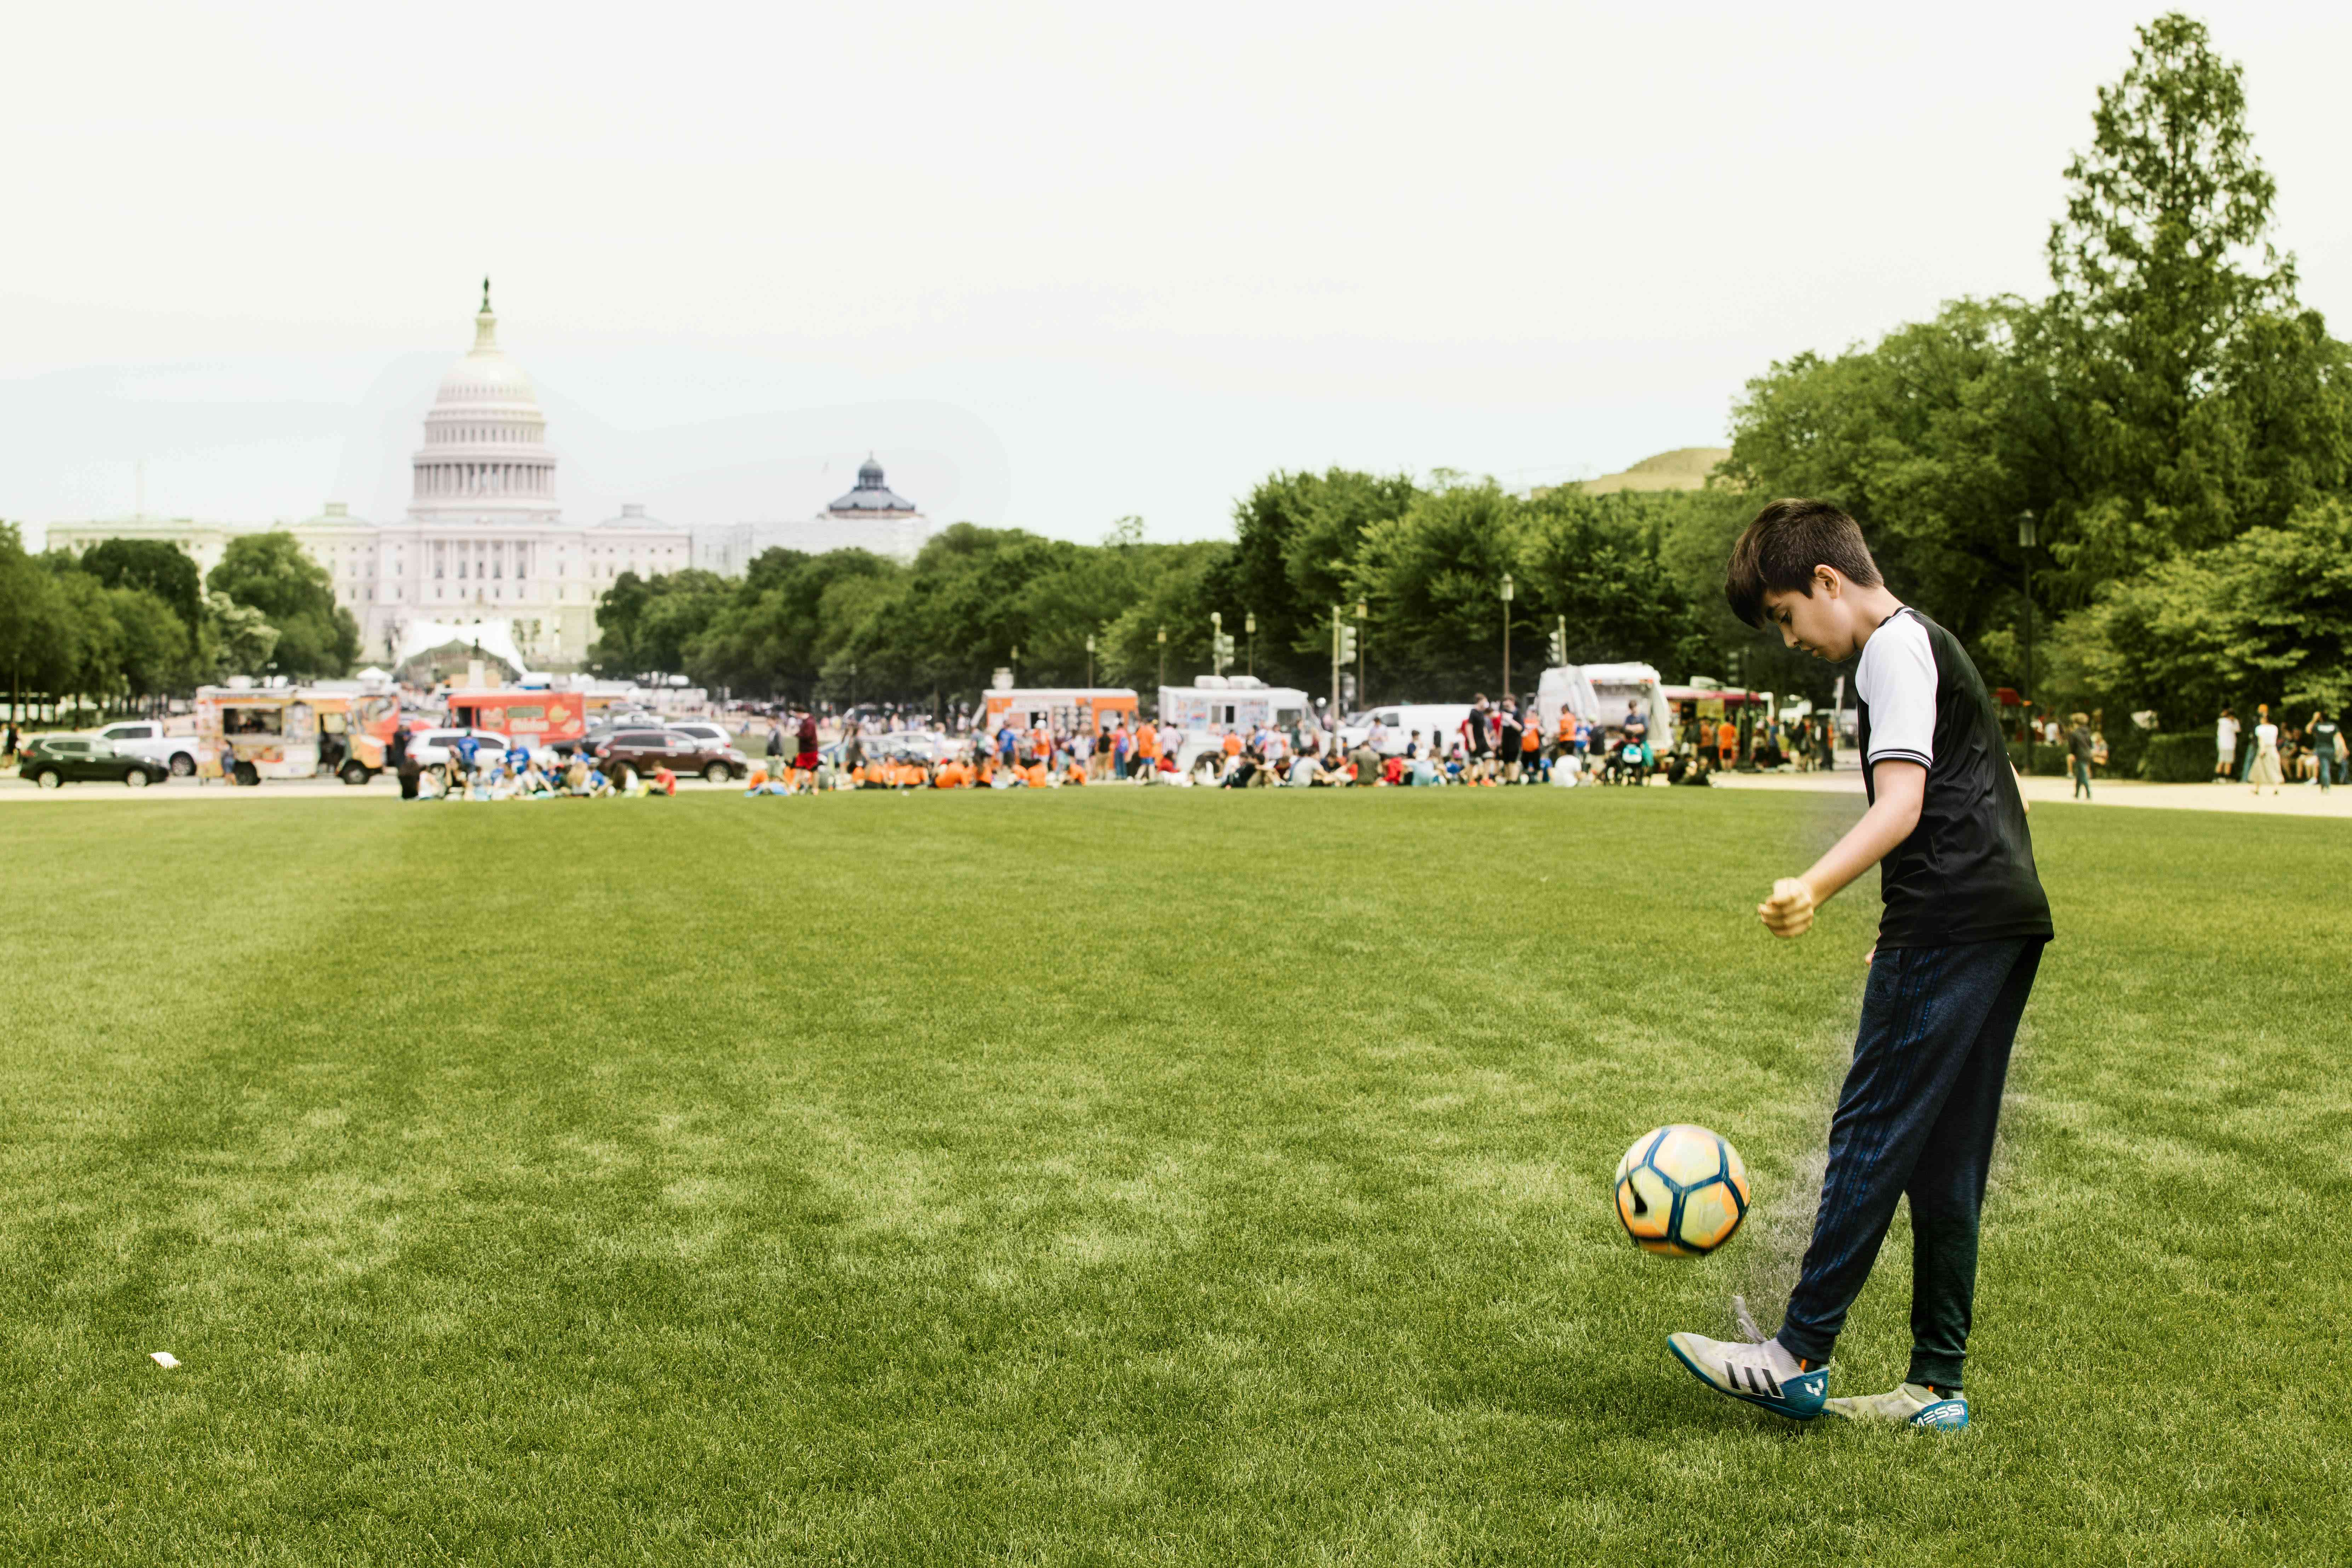 Boy playing soccer on the National Mall